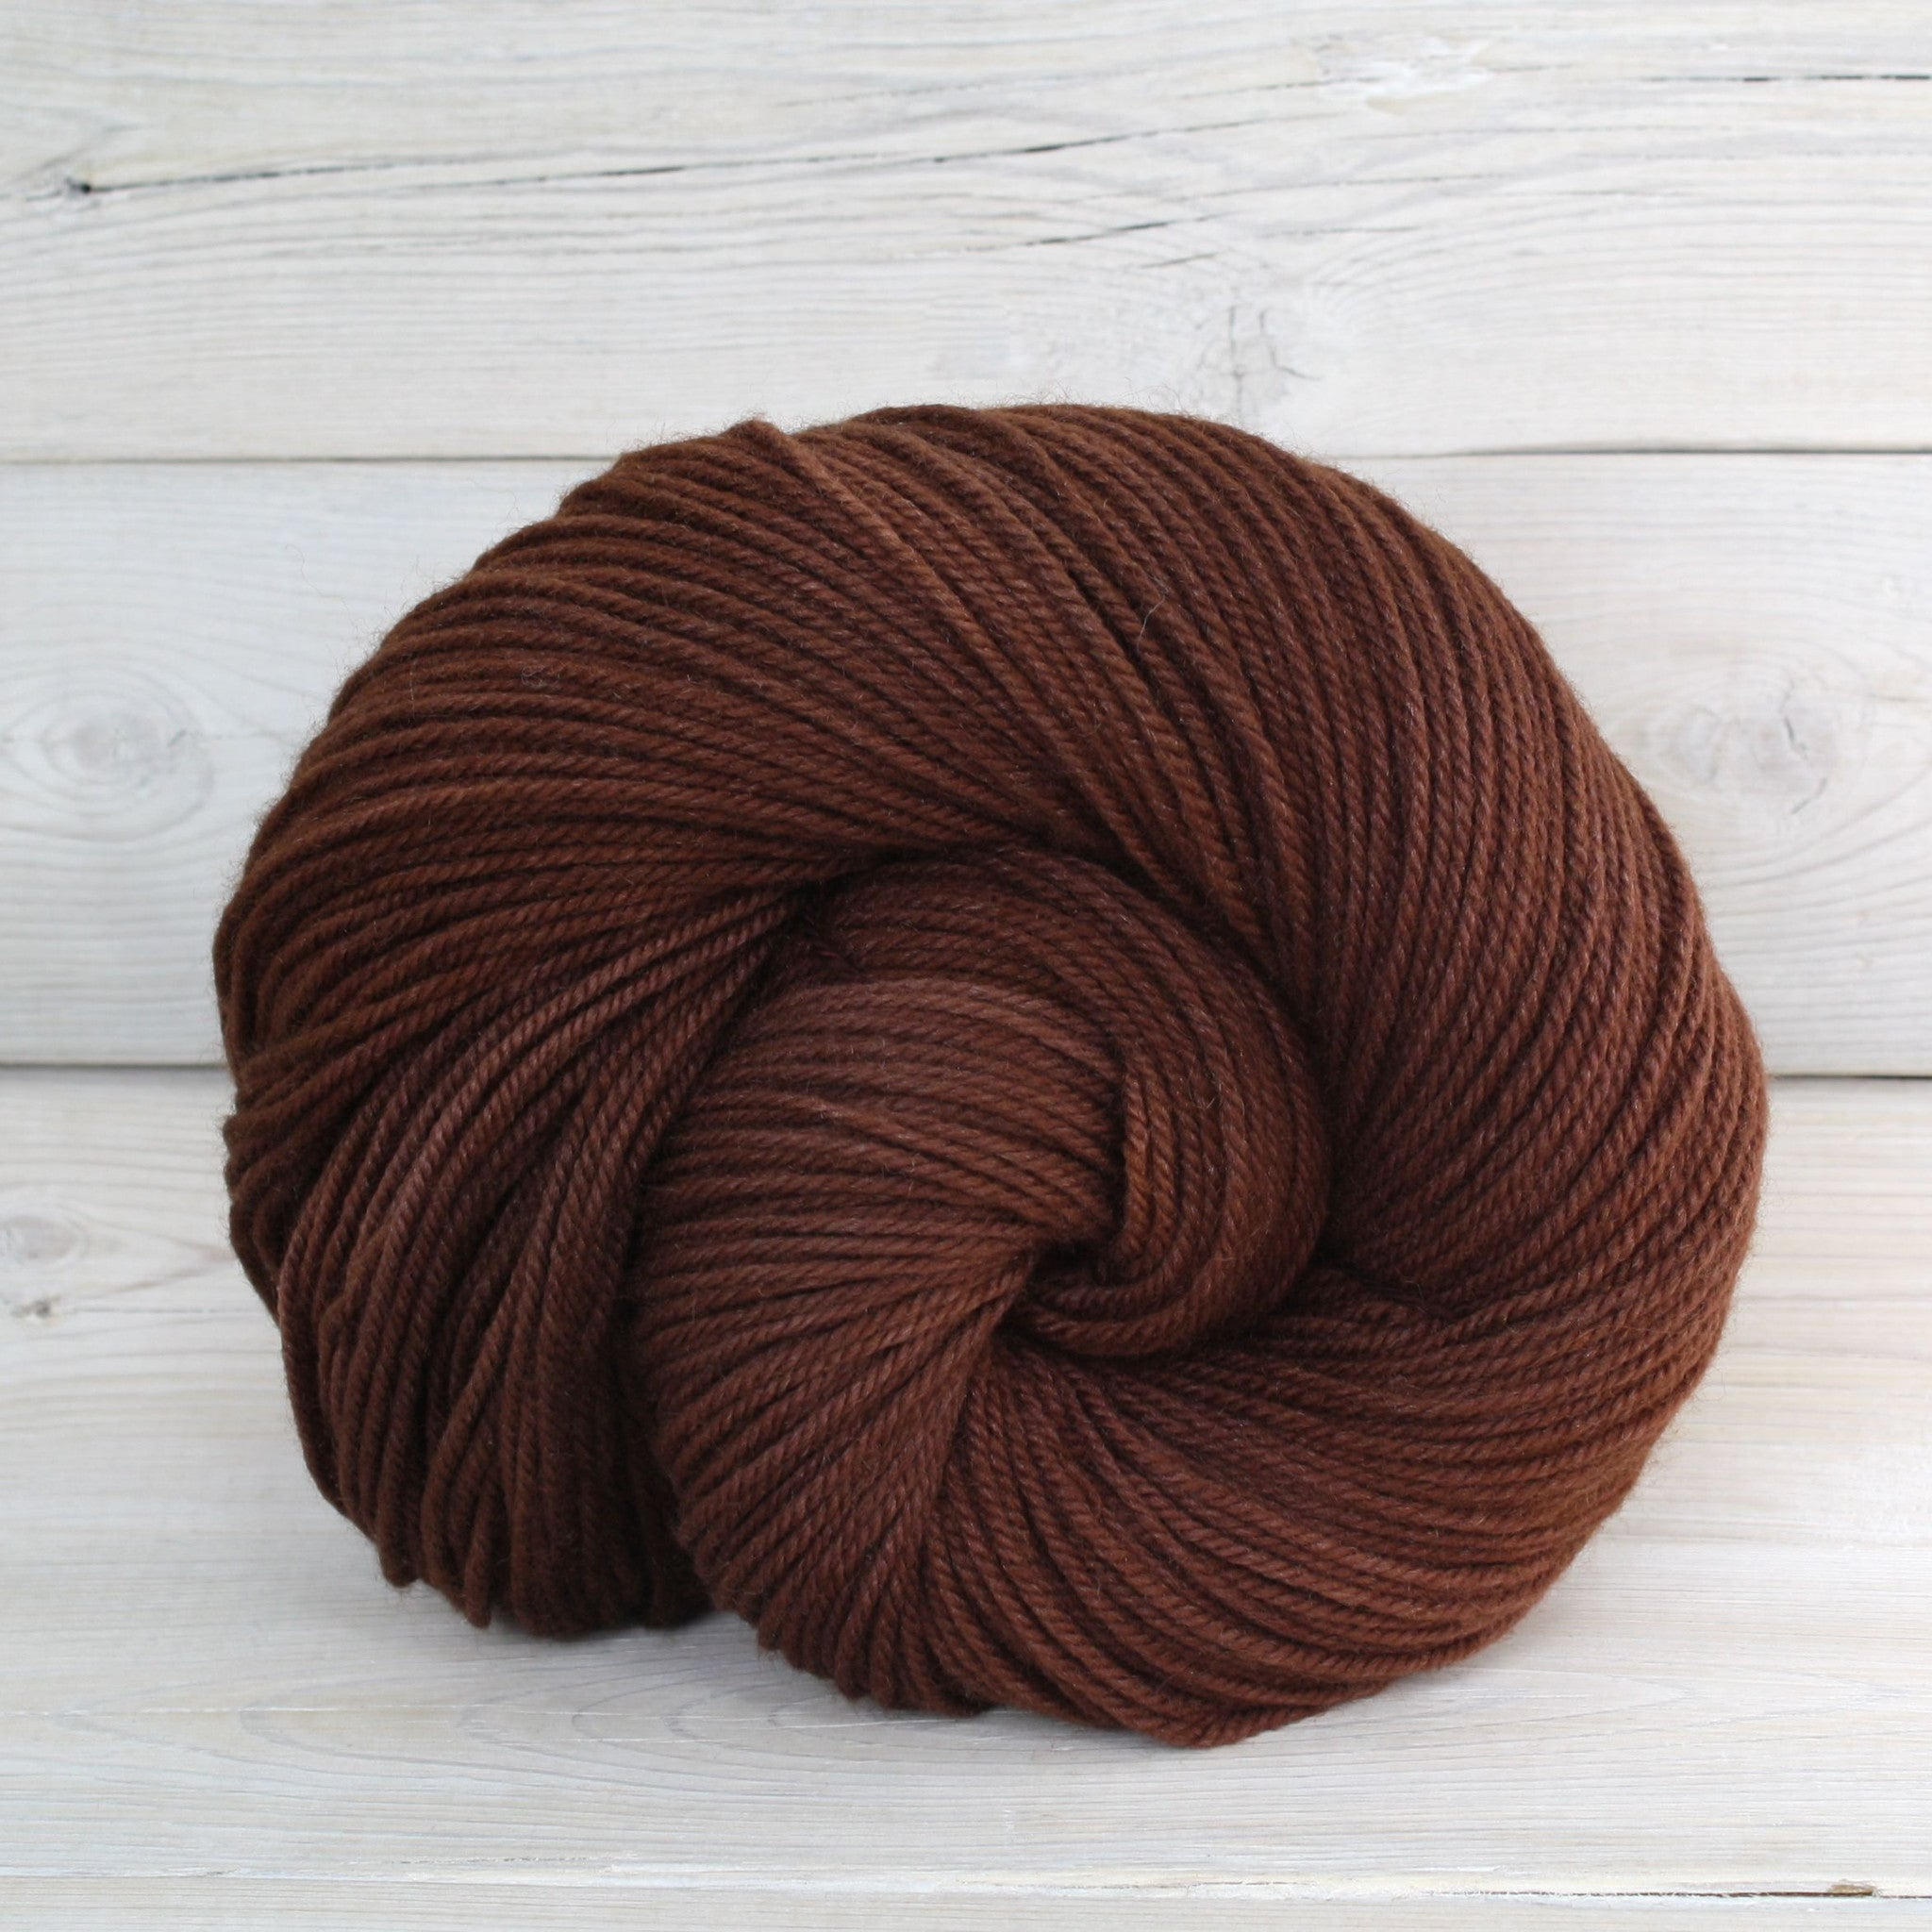 Luna Grey Fiber Arts Zeta Yarn | Colorway: Rootbeer